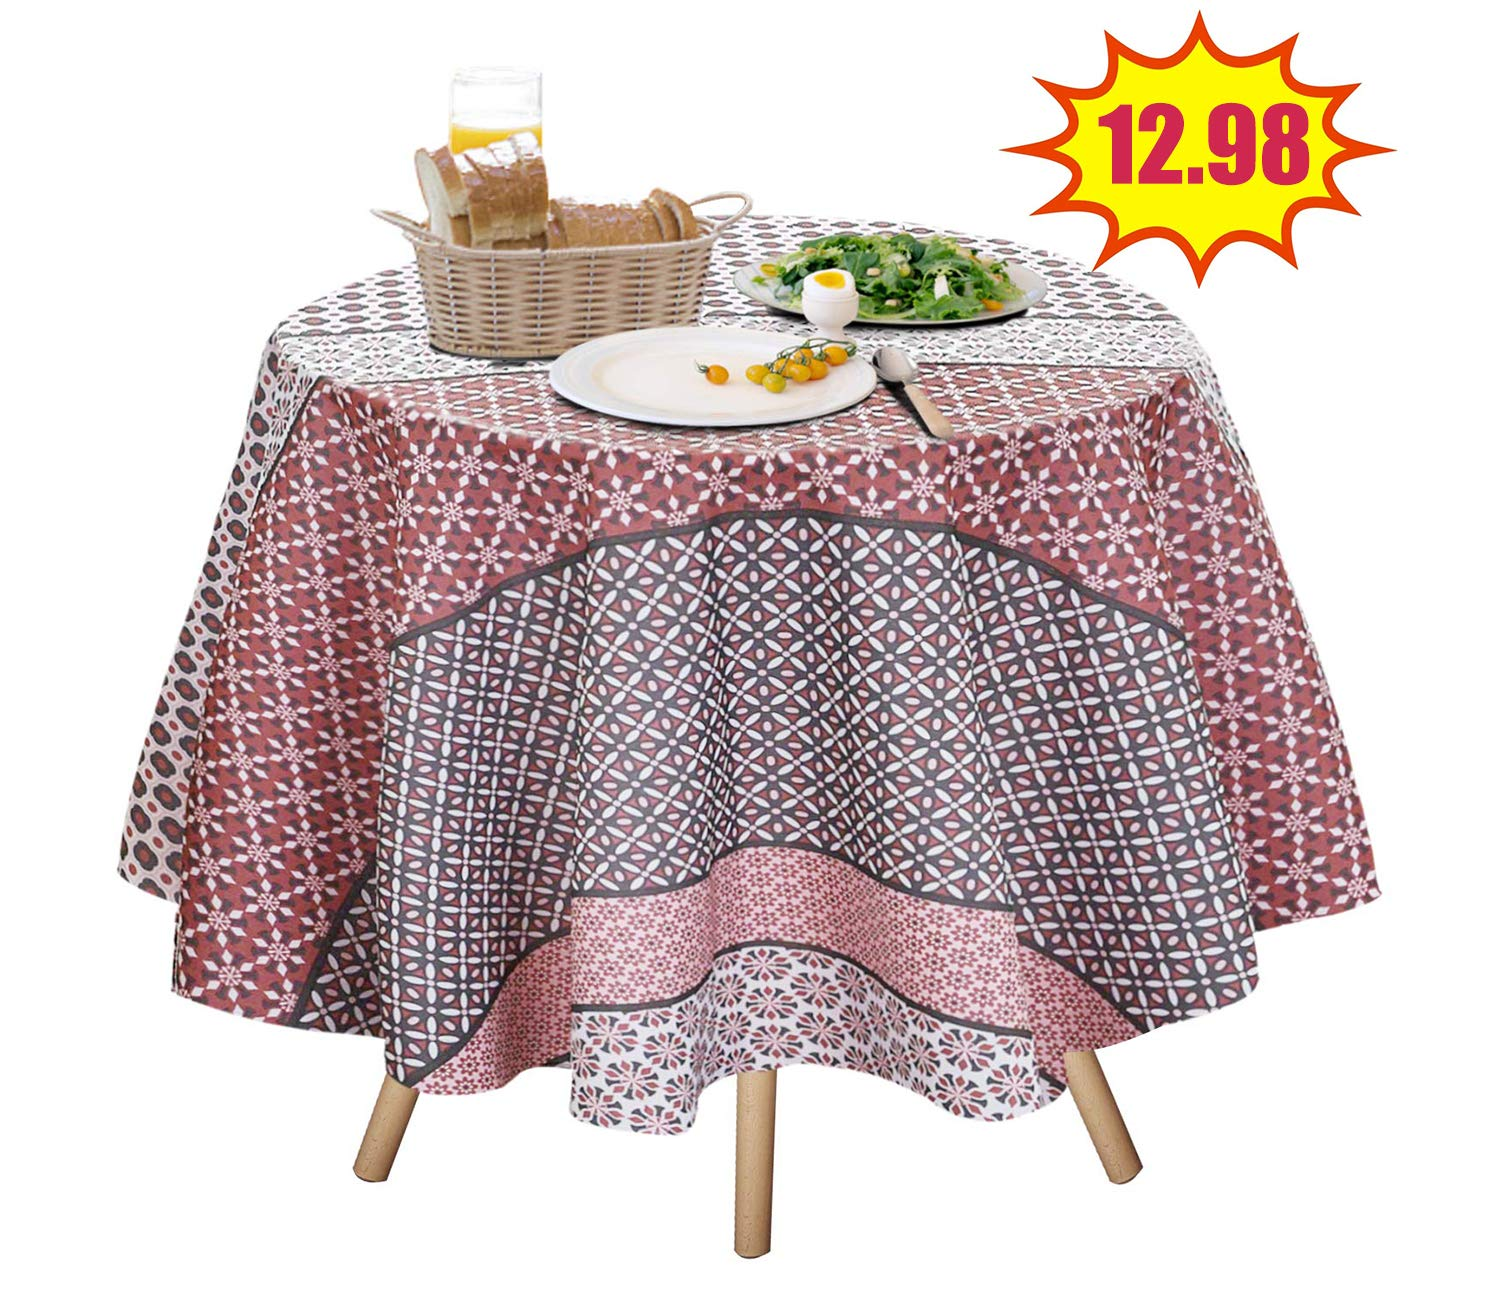 Polka Dot Pink, 70 Round JIATER Elegant Printed Table Cloth Spillproof Polyester Fabric Round Tablecloth